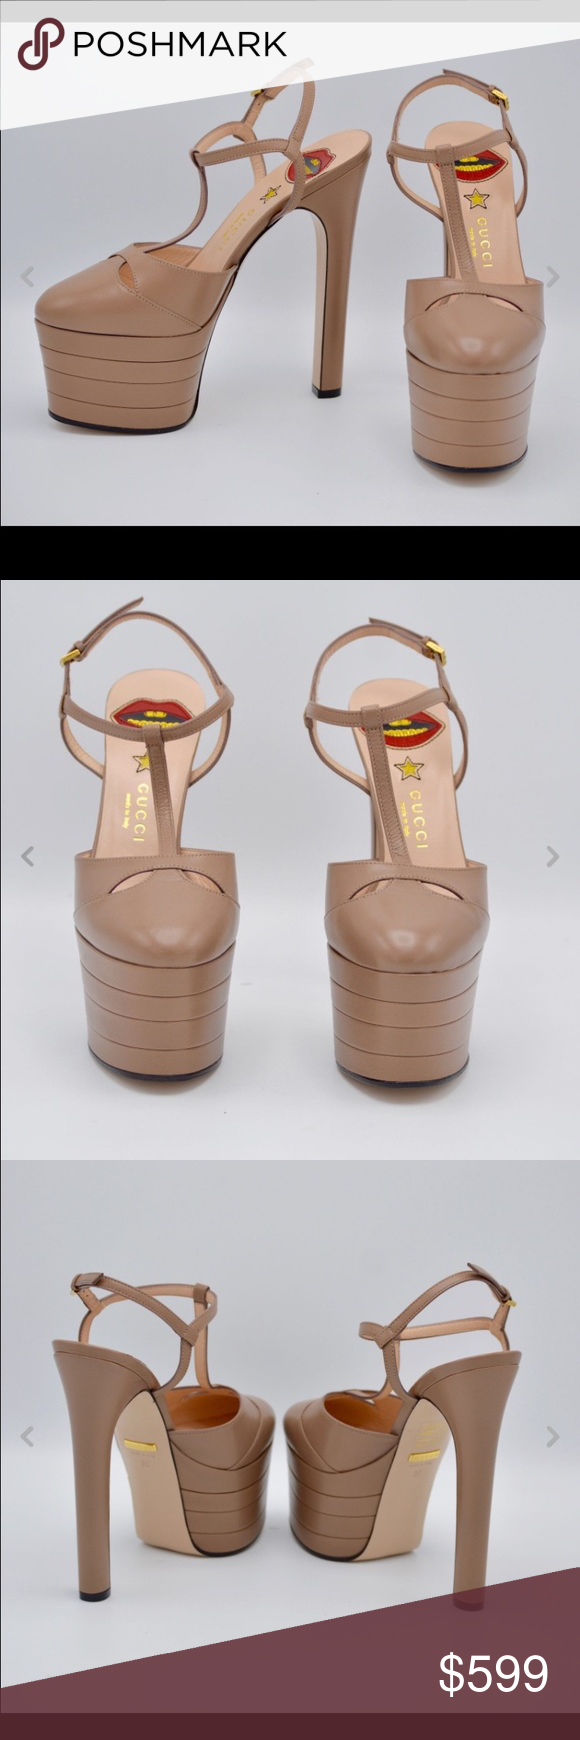 8b7458db4df6 Gucci Womens Leather Platform pump Porcelain Rose RETAIL PRICE  965.00    EMAIL ME FOR OTHER